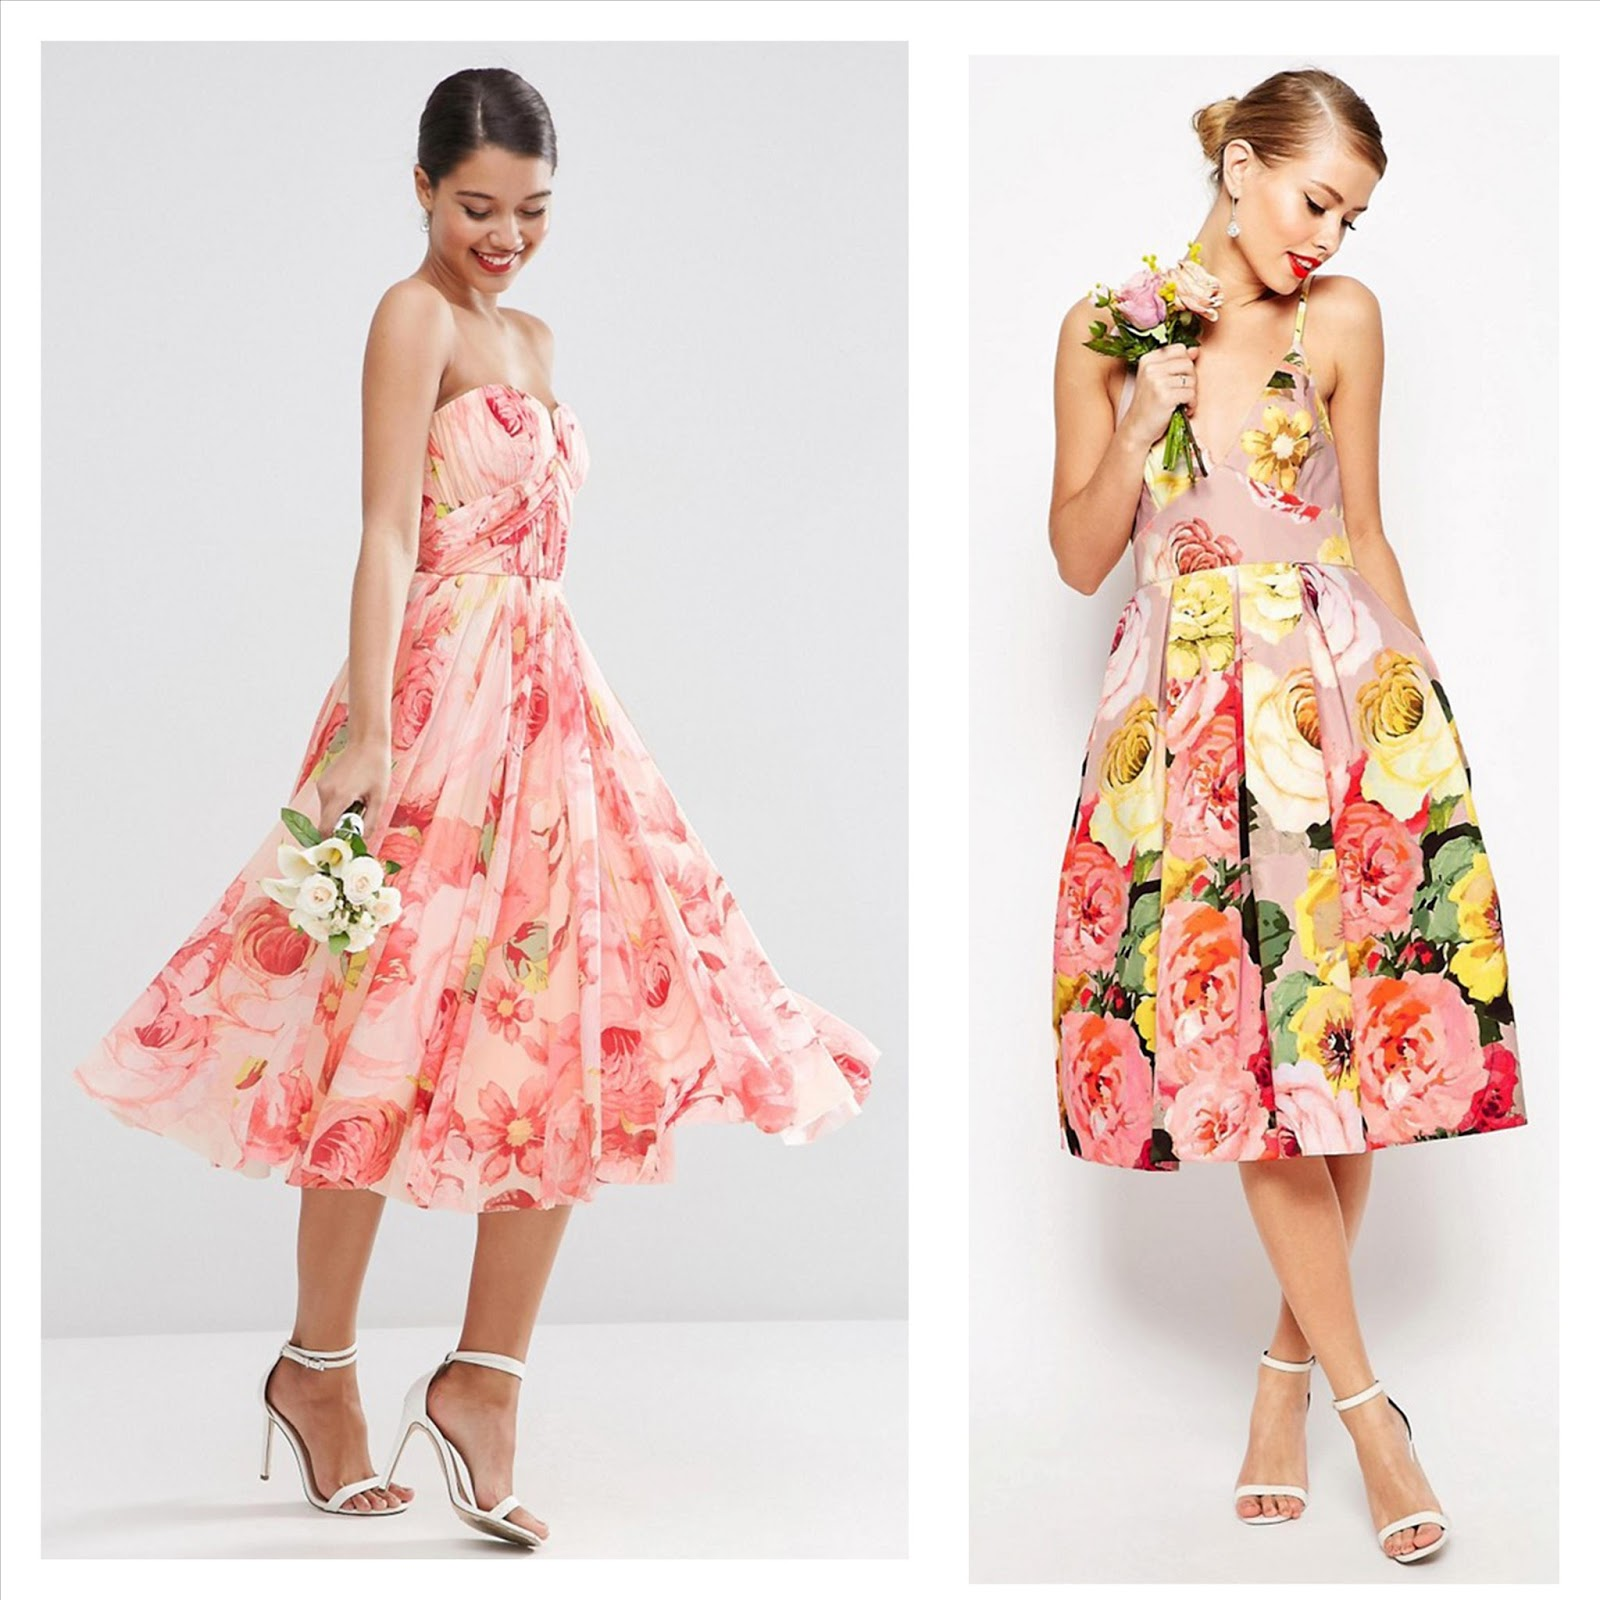 Floral patterned bridesmaid dresses brooklyn designs floral patterned bridesmaid dresses ombrellifo Images